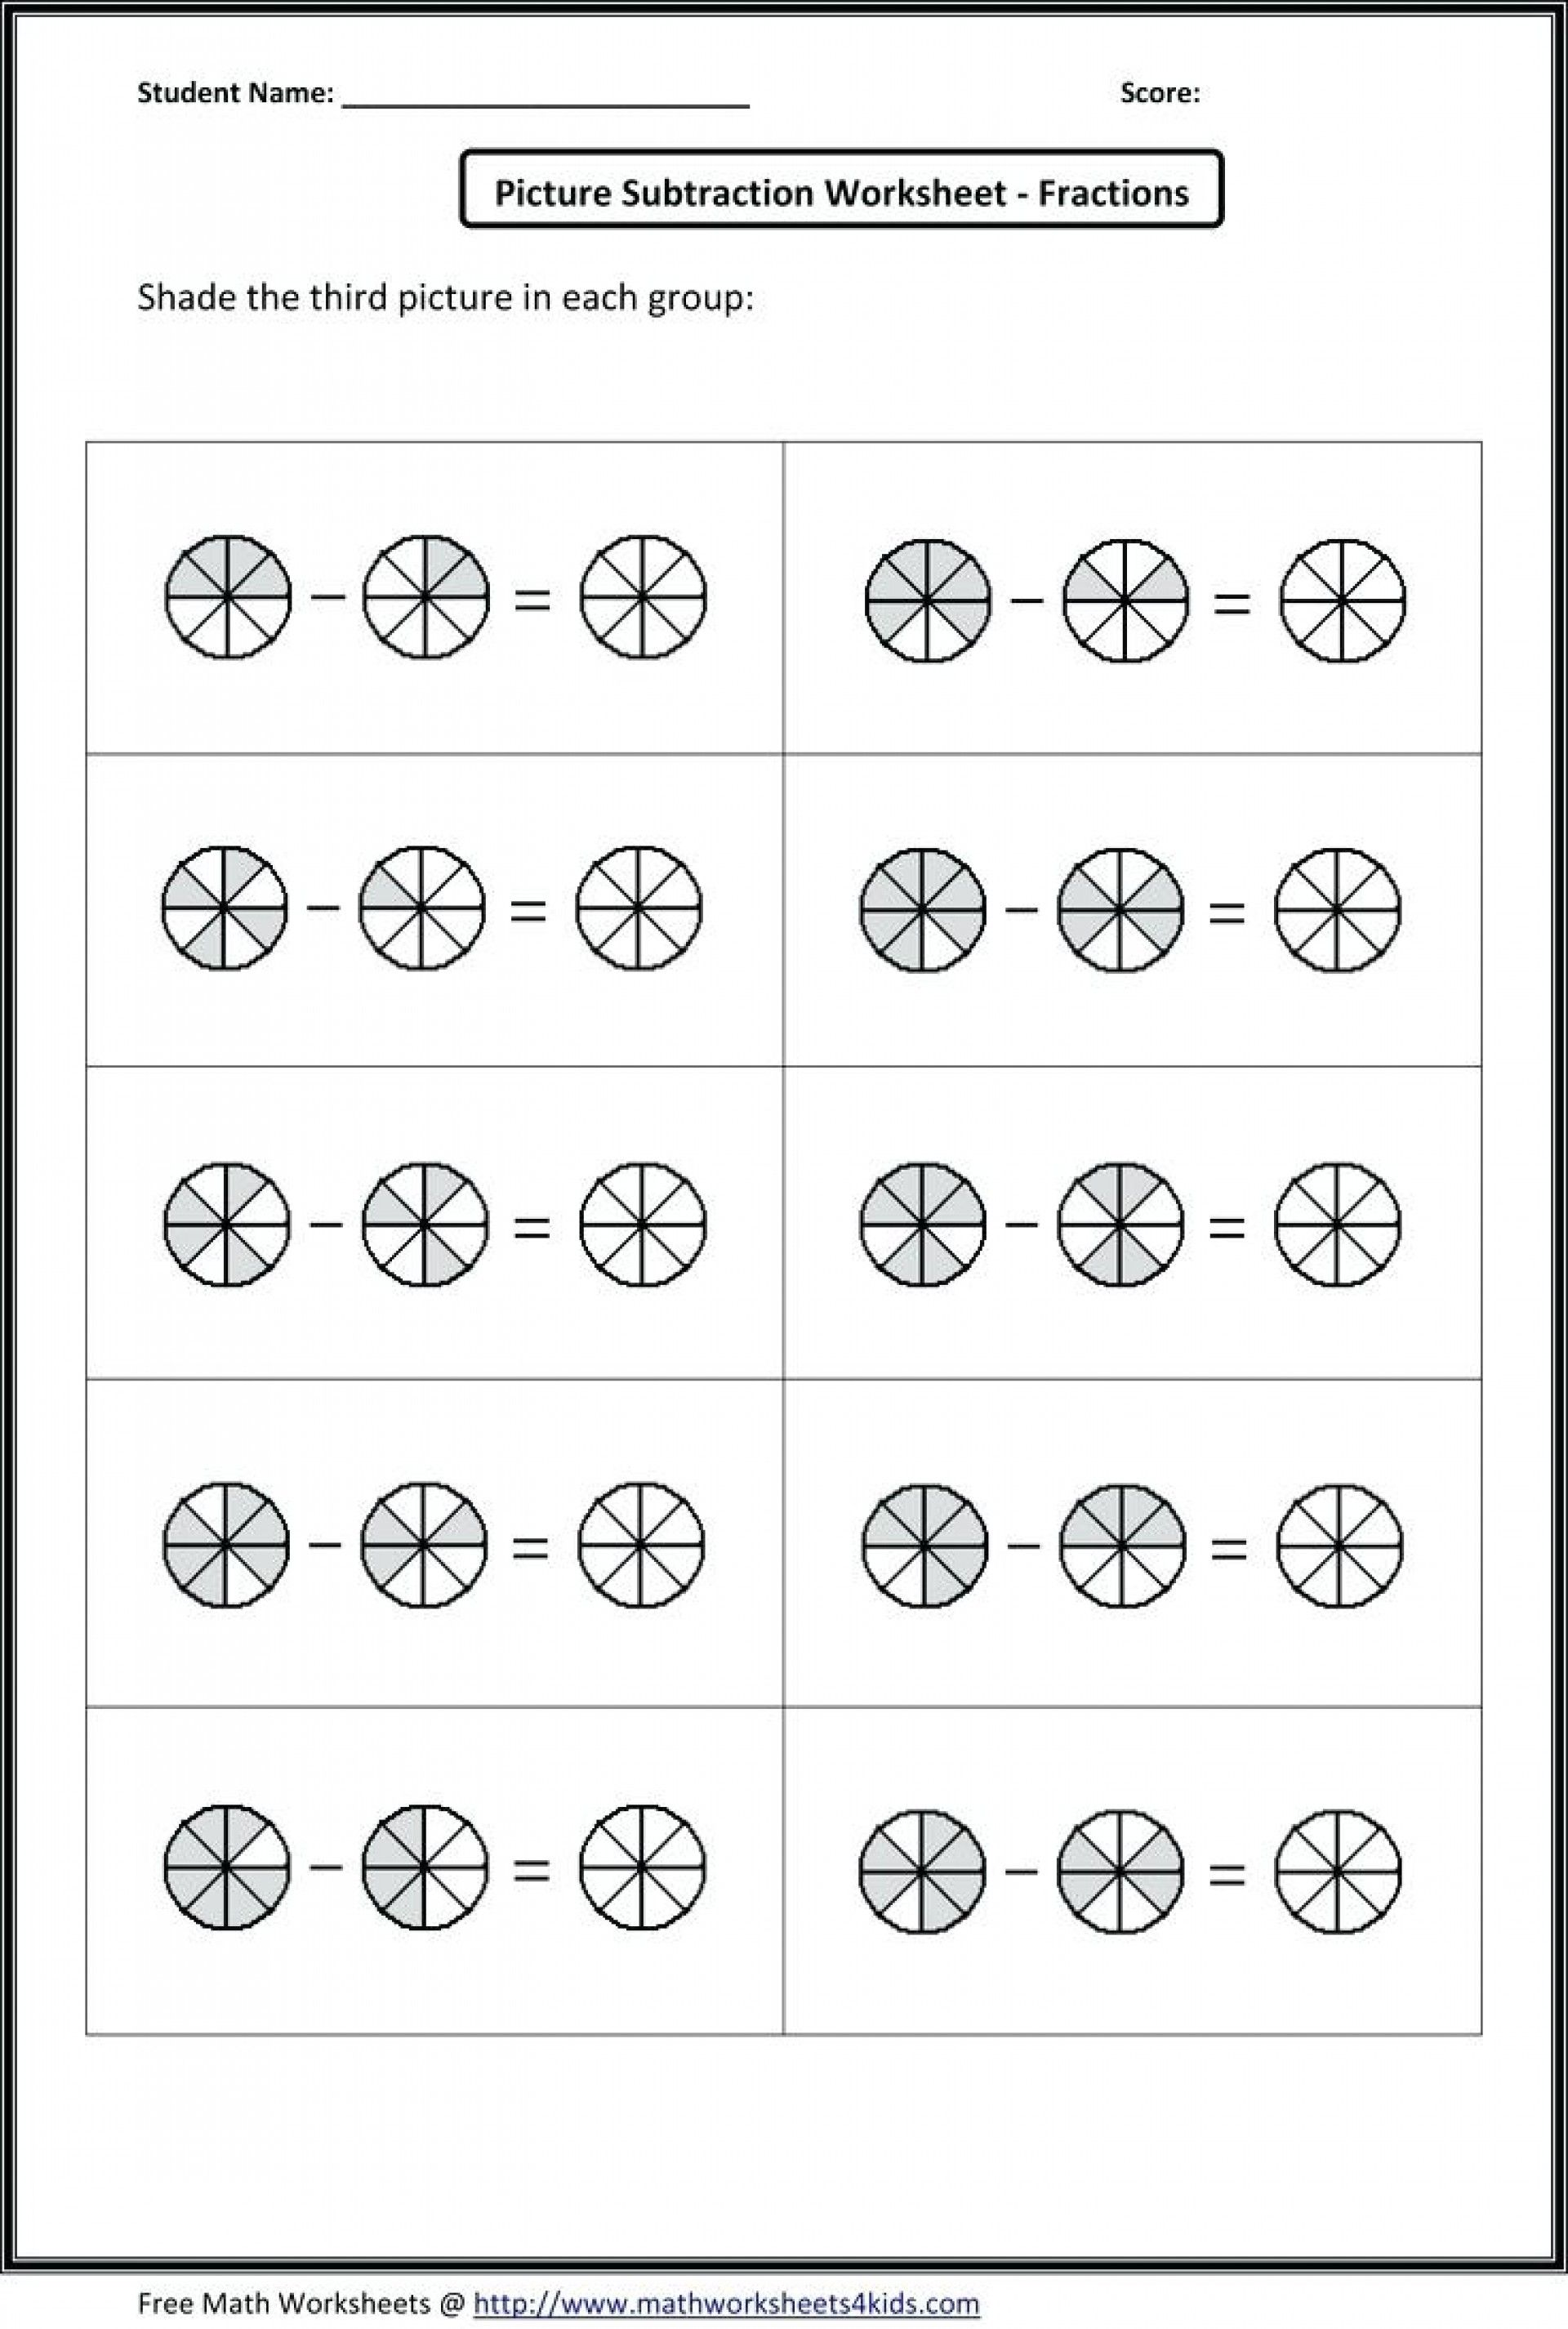 Adding Fractions Worksheets Adding Fraction Worksheets